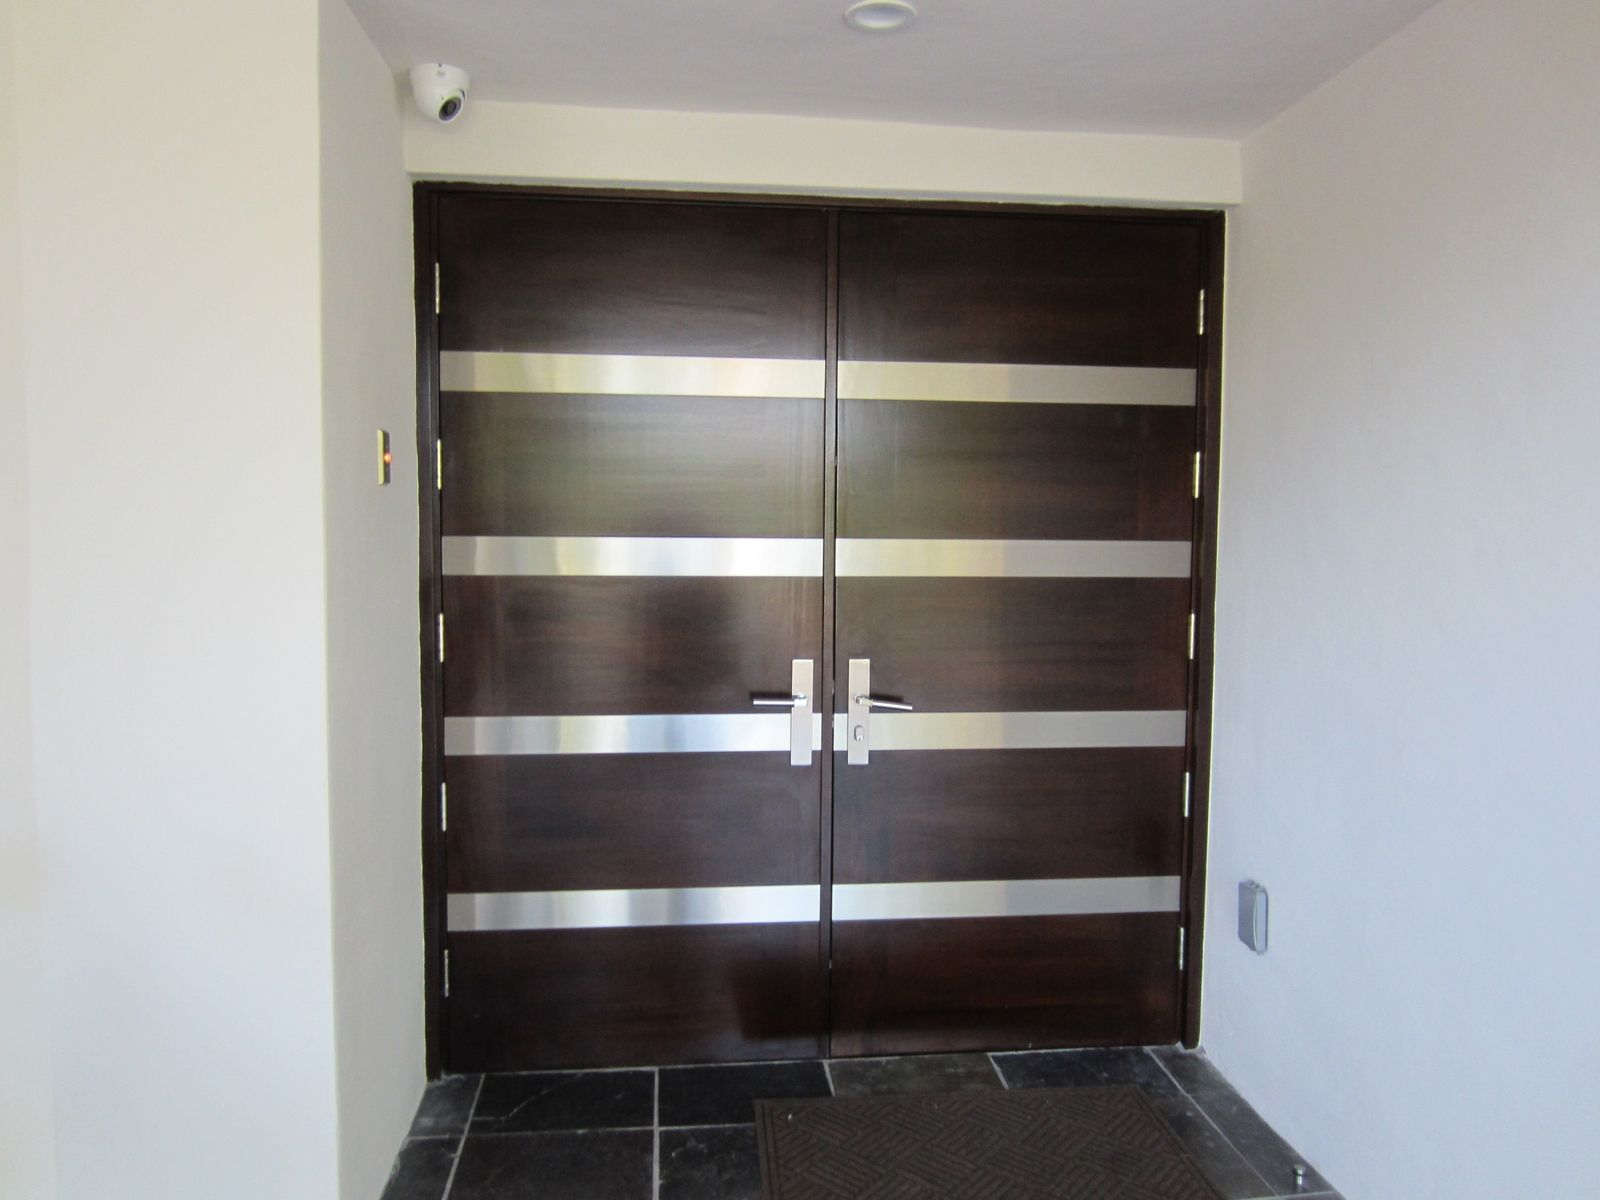 1200 #665D4F  Installations Doors Contemporary Entry Doors With Stainless Steel wallpaper Pre Hung Steel Doors 44751600